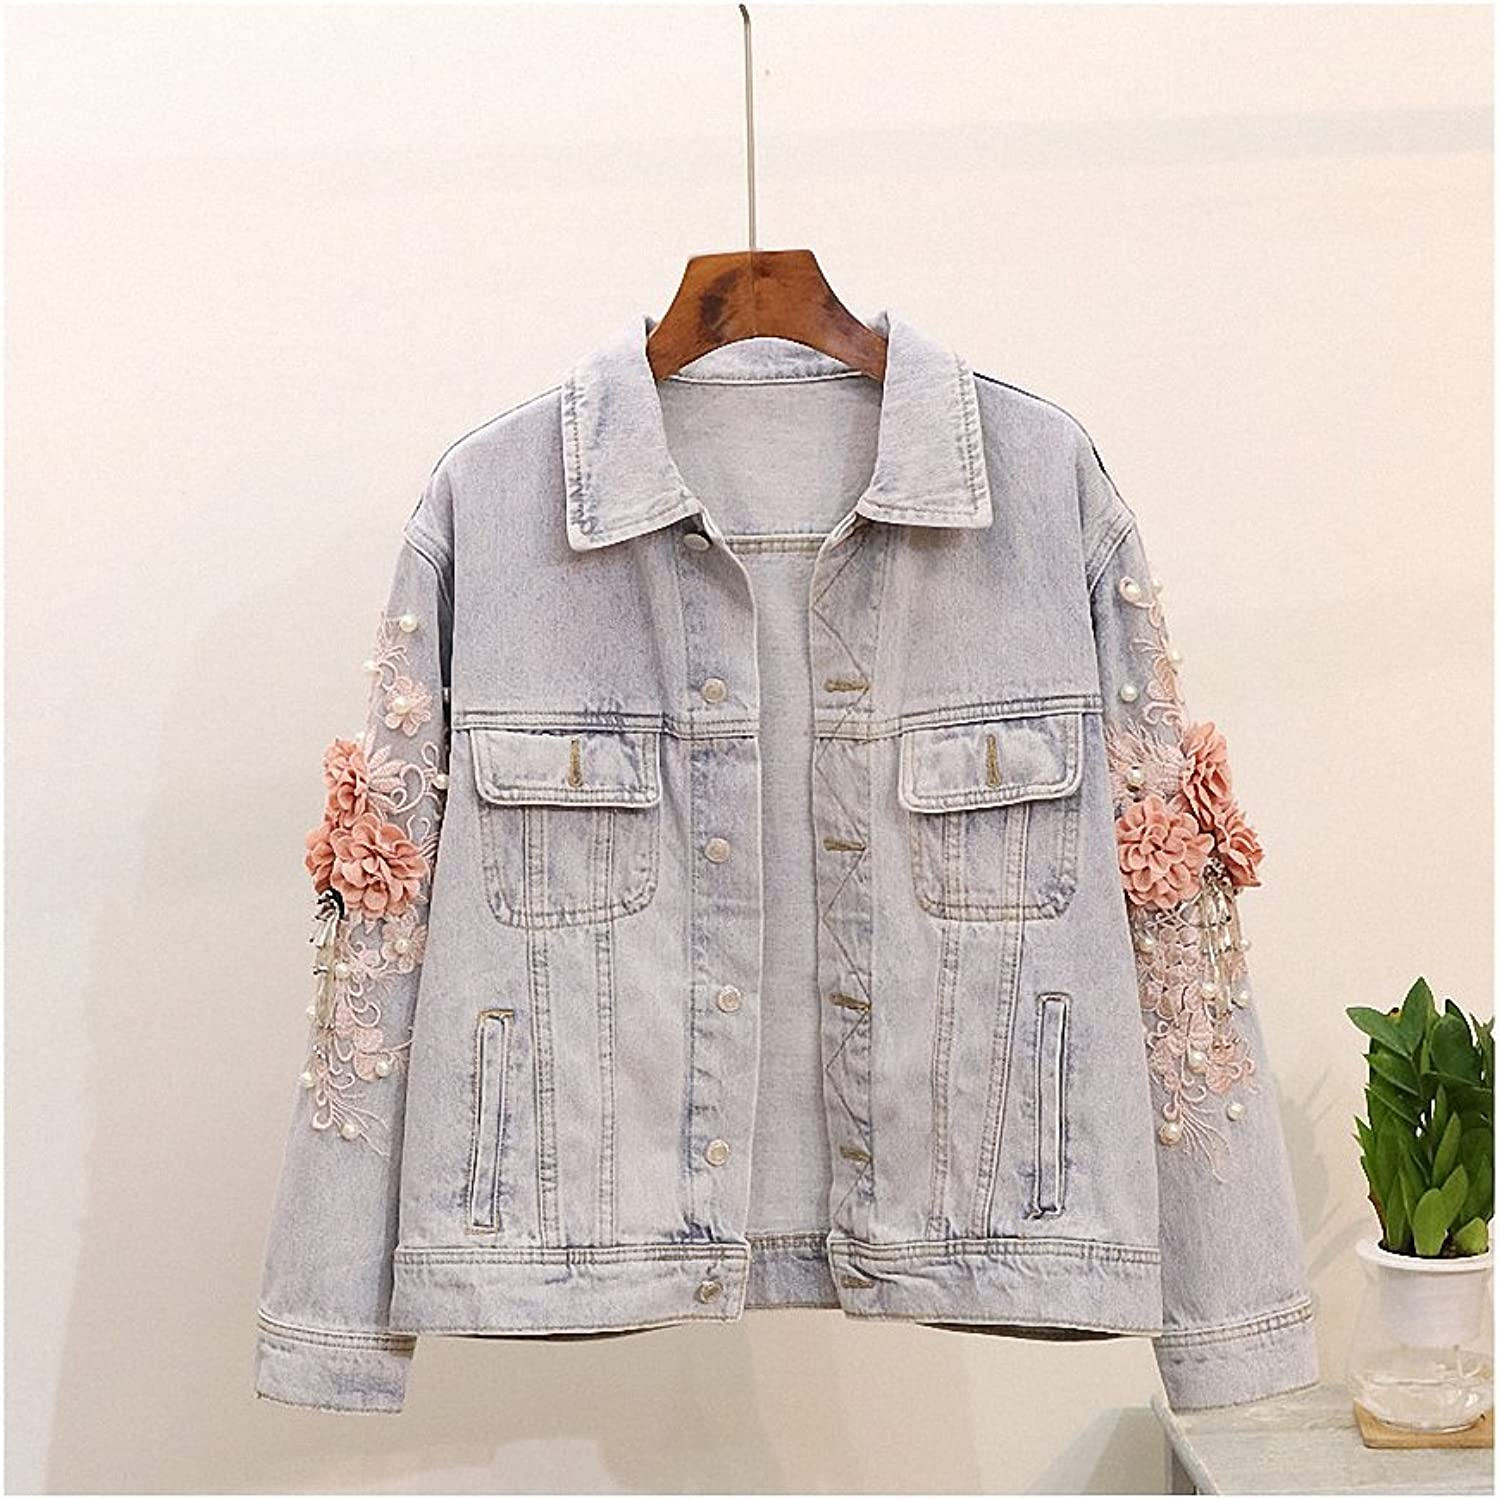 Hiuwa Womens Denim Jacket Vintage Beading Embroidery Flower Casual Outwear